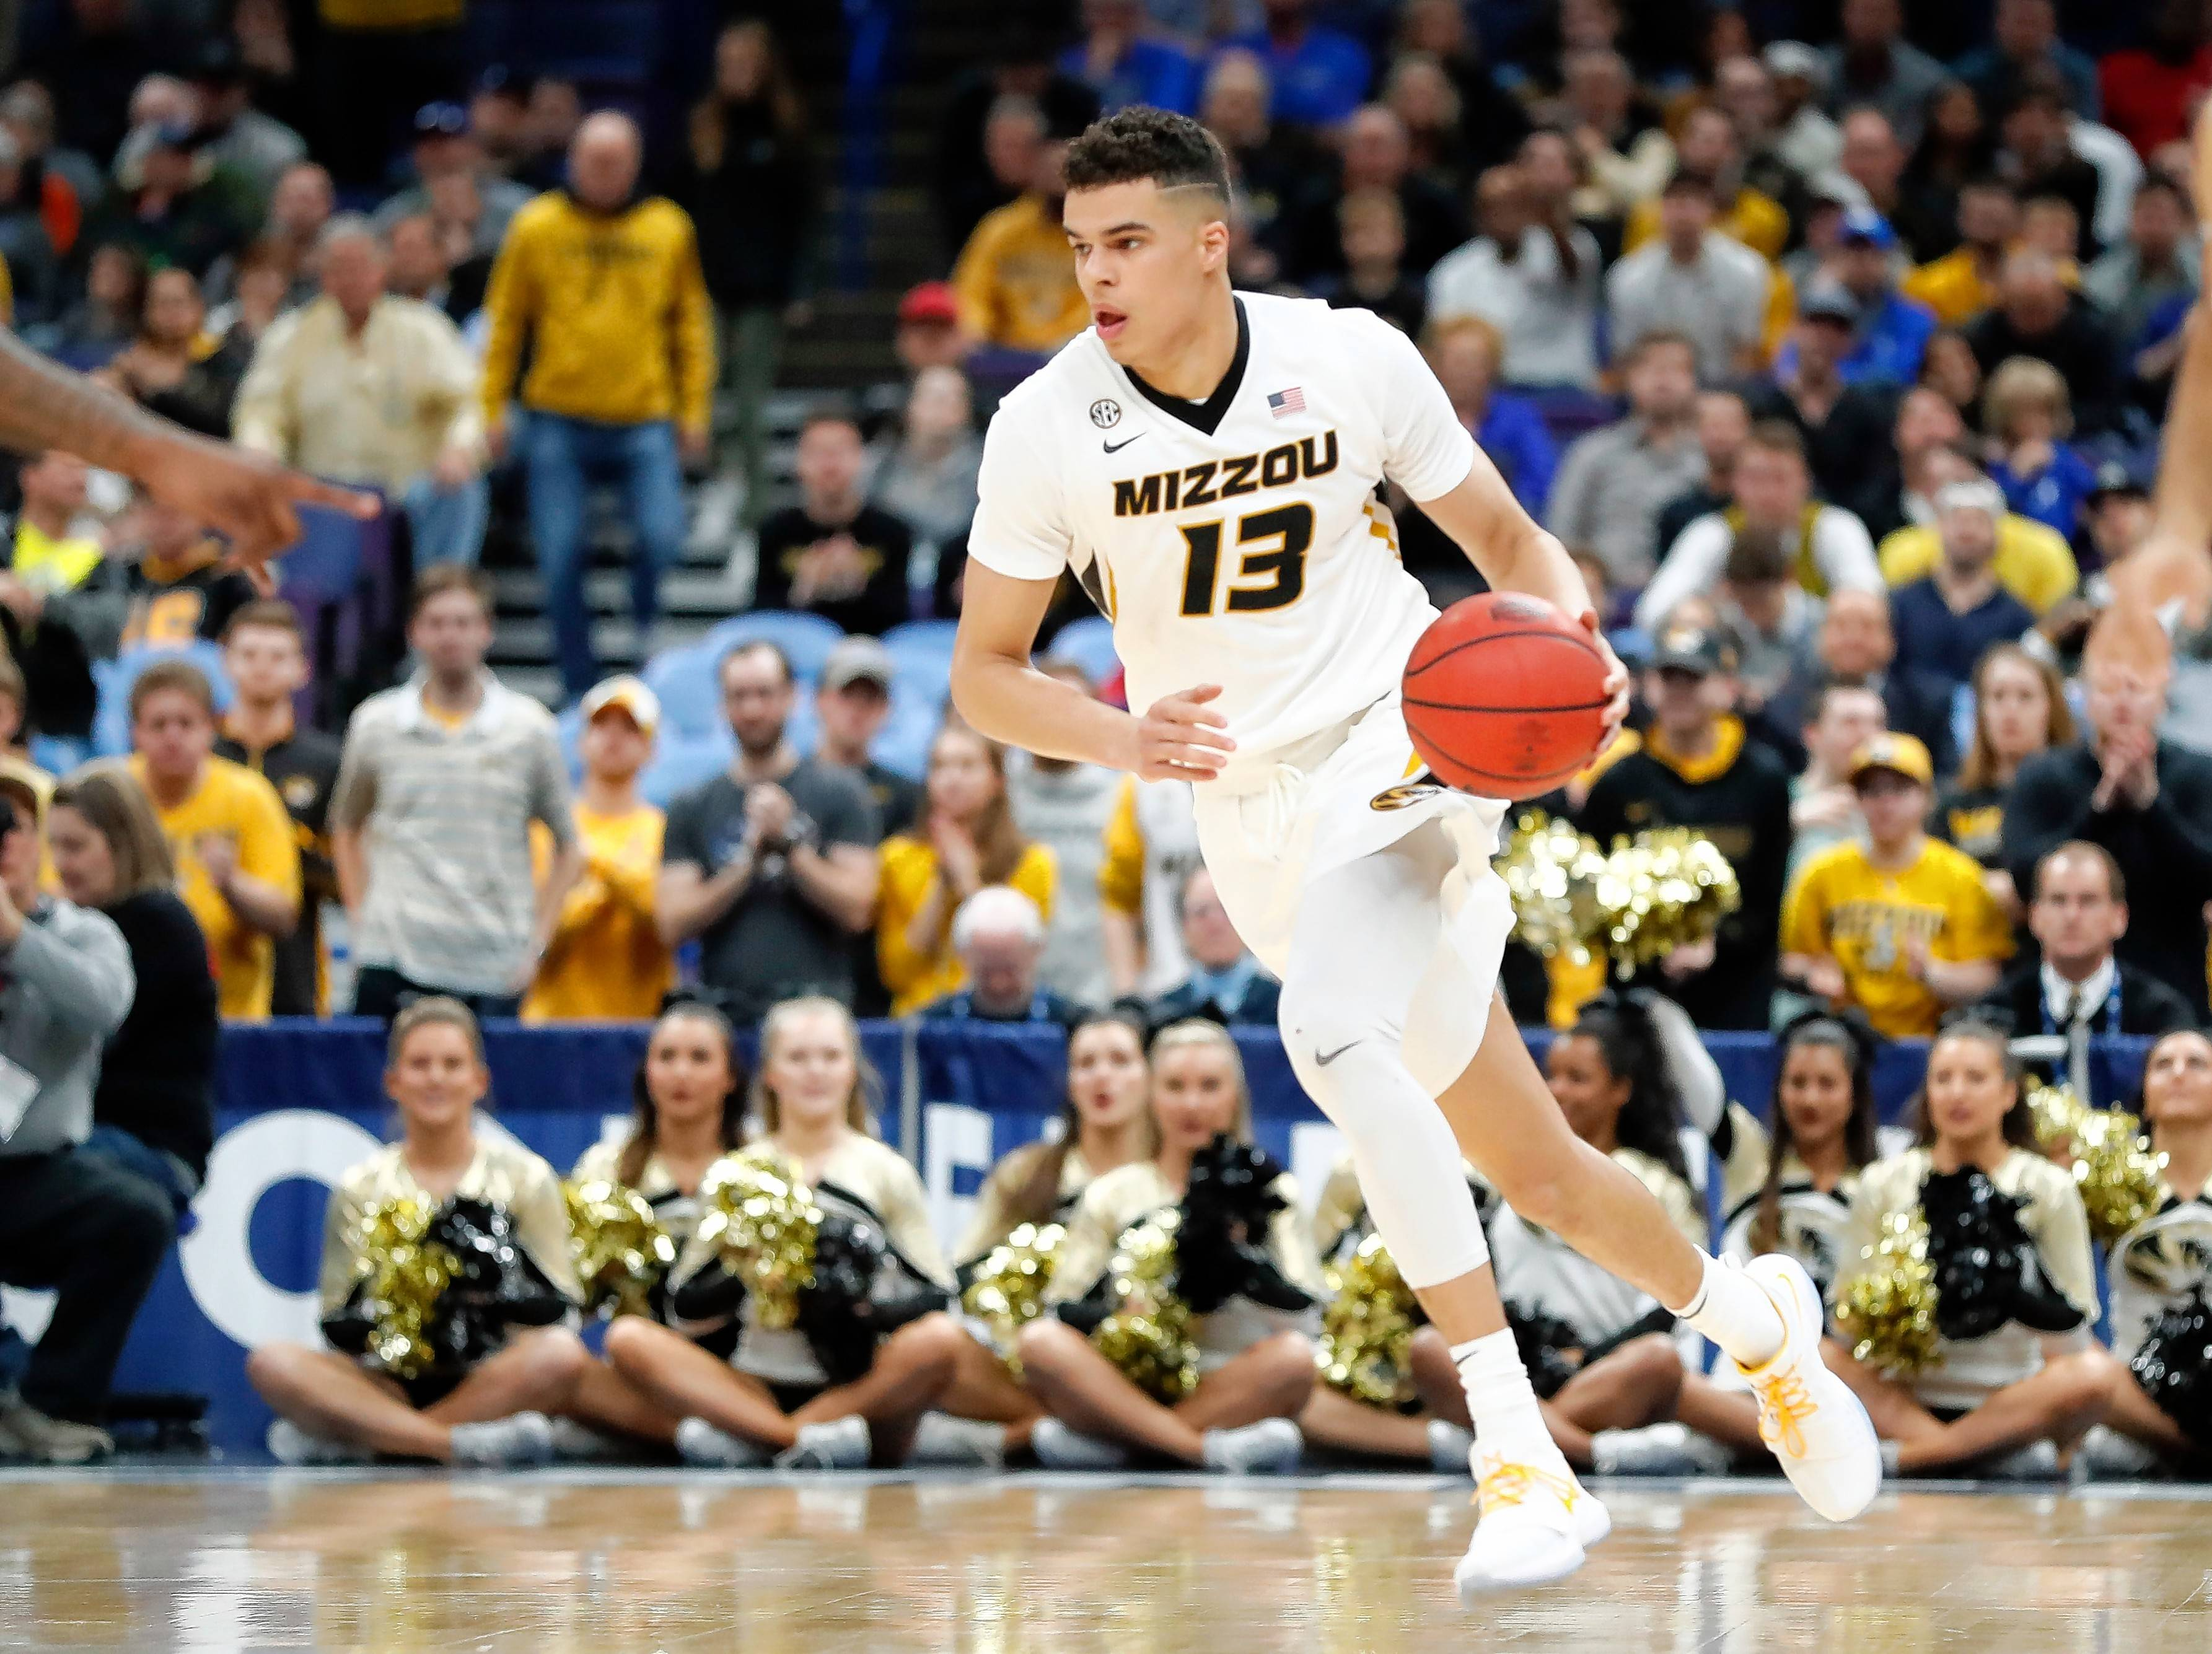 Missouri's Michael Porter Jr. is 6-foot-10 with a 7-foot wingspan. A back injury sidelined him for much of his lone college season, but he is considered a pure shooter with great versatility.